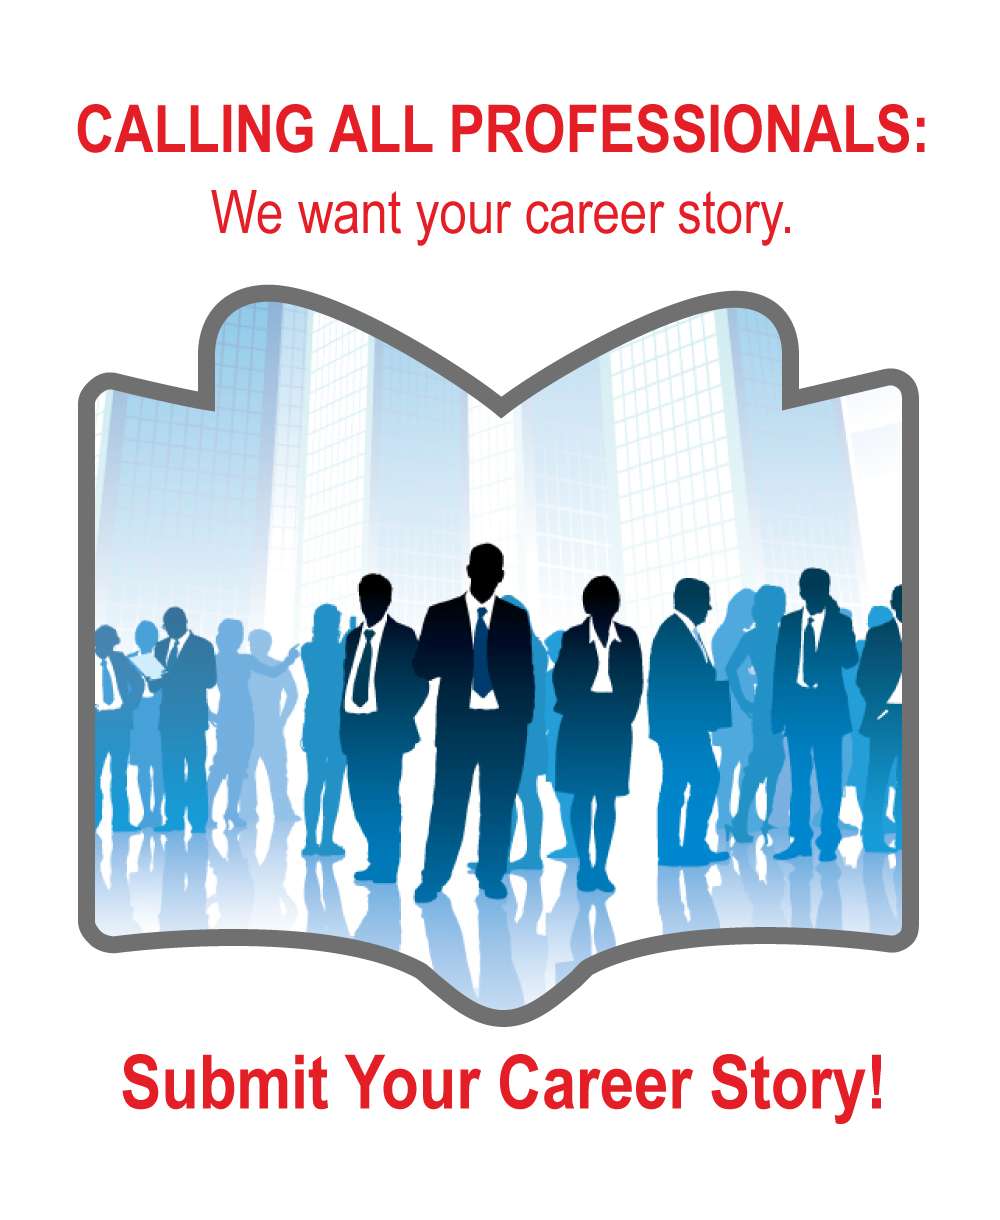 Submit Your Career Story